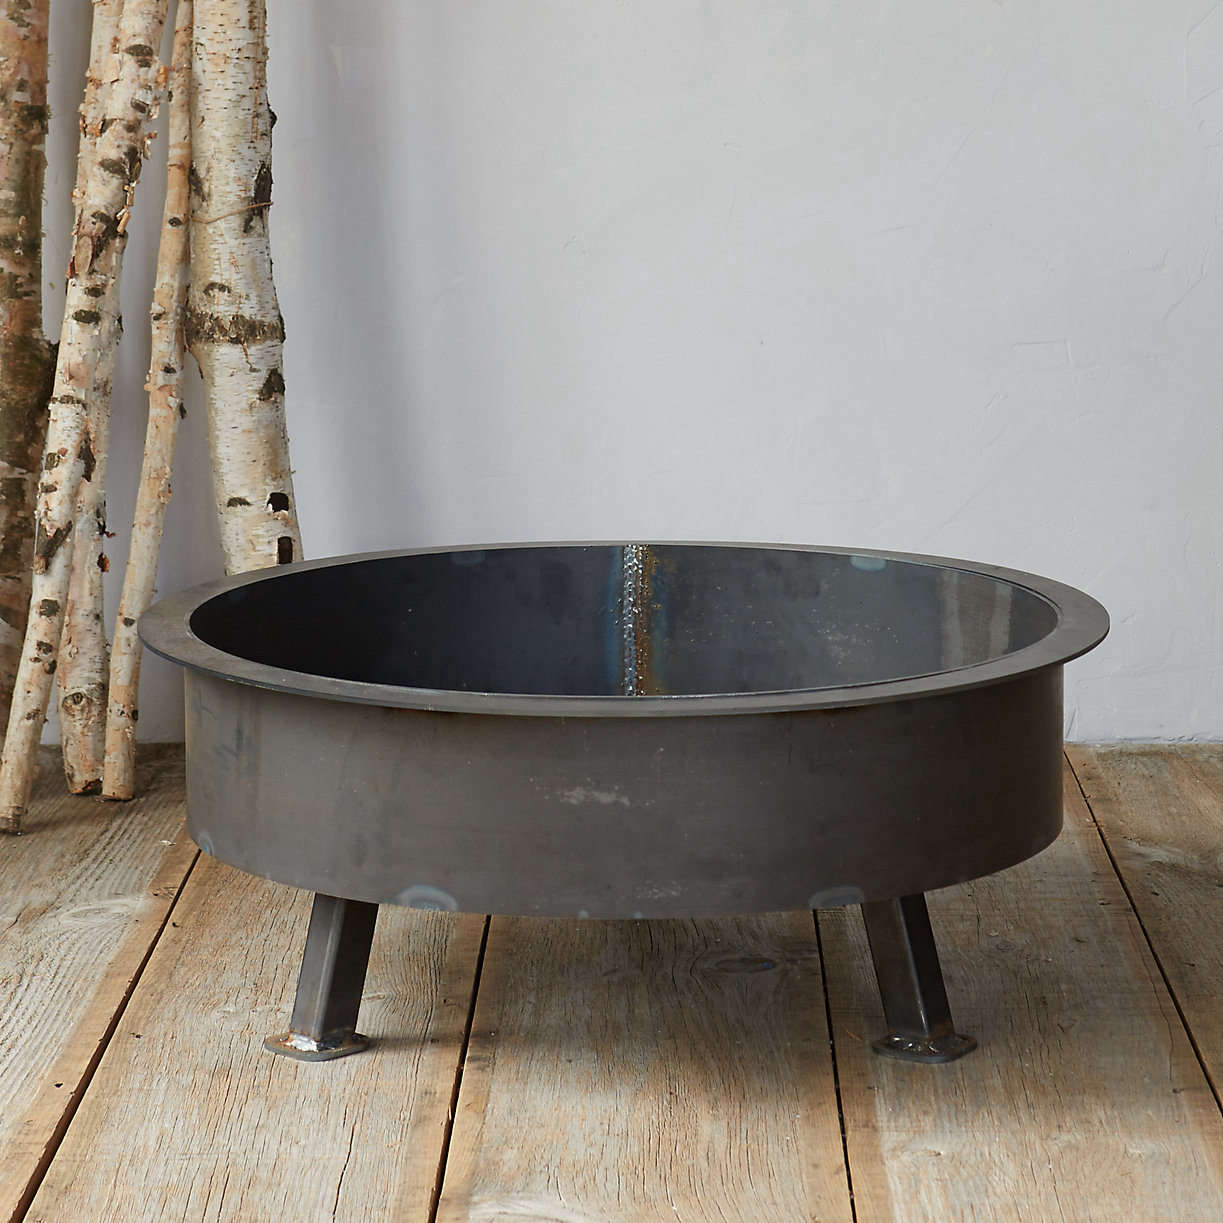 The Insignia Fire Pit measures 3src=